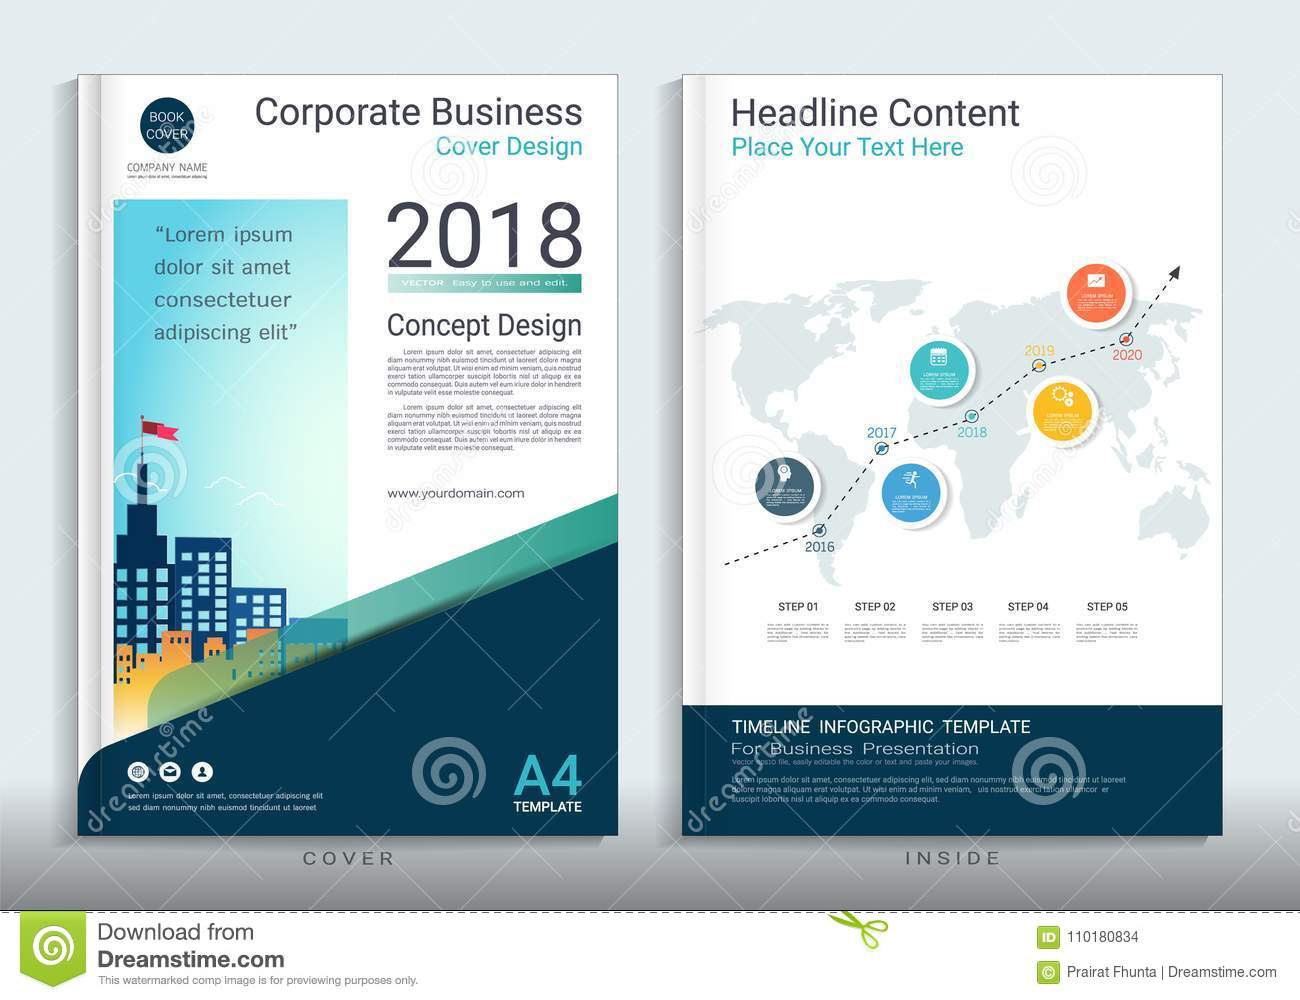 Corporate Business Cover Book Design Template With Infographic